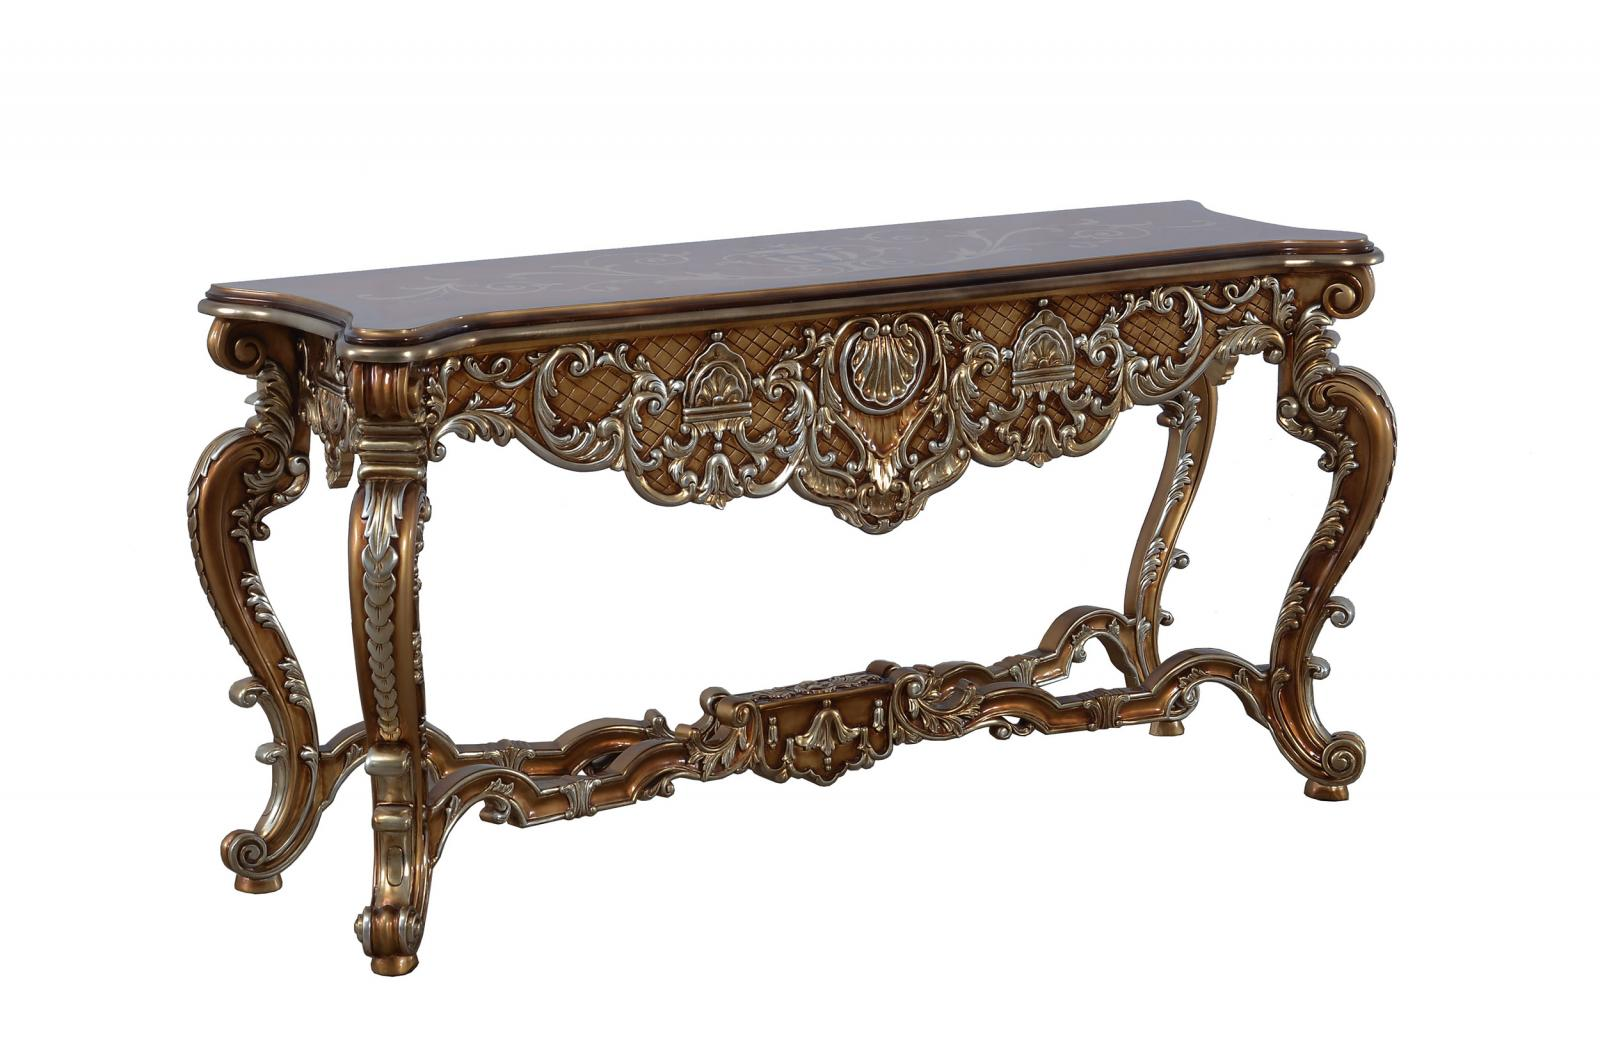 Classic  Traditional Brown  Gold  Silver  Antique Wood  Solid Hardwood and  Console Table EUROPEAN FURNITURE 35550-ST